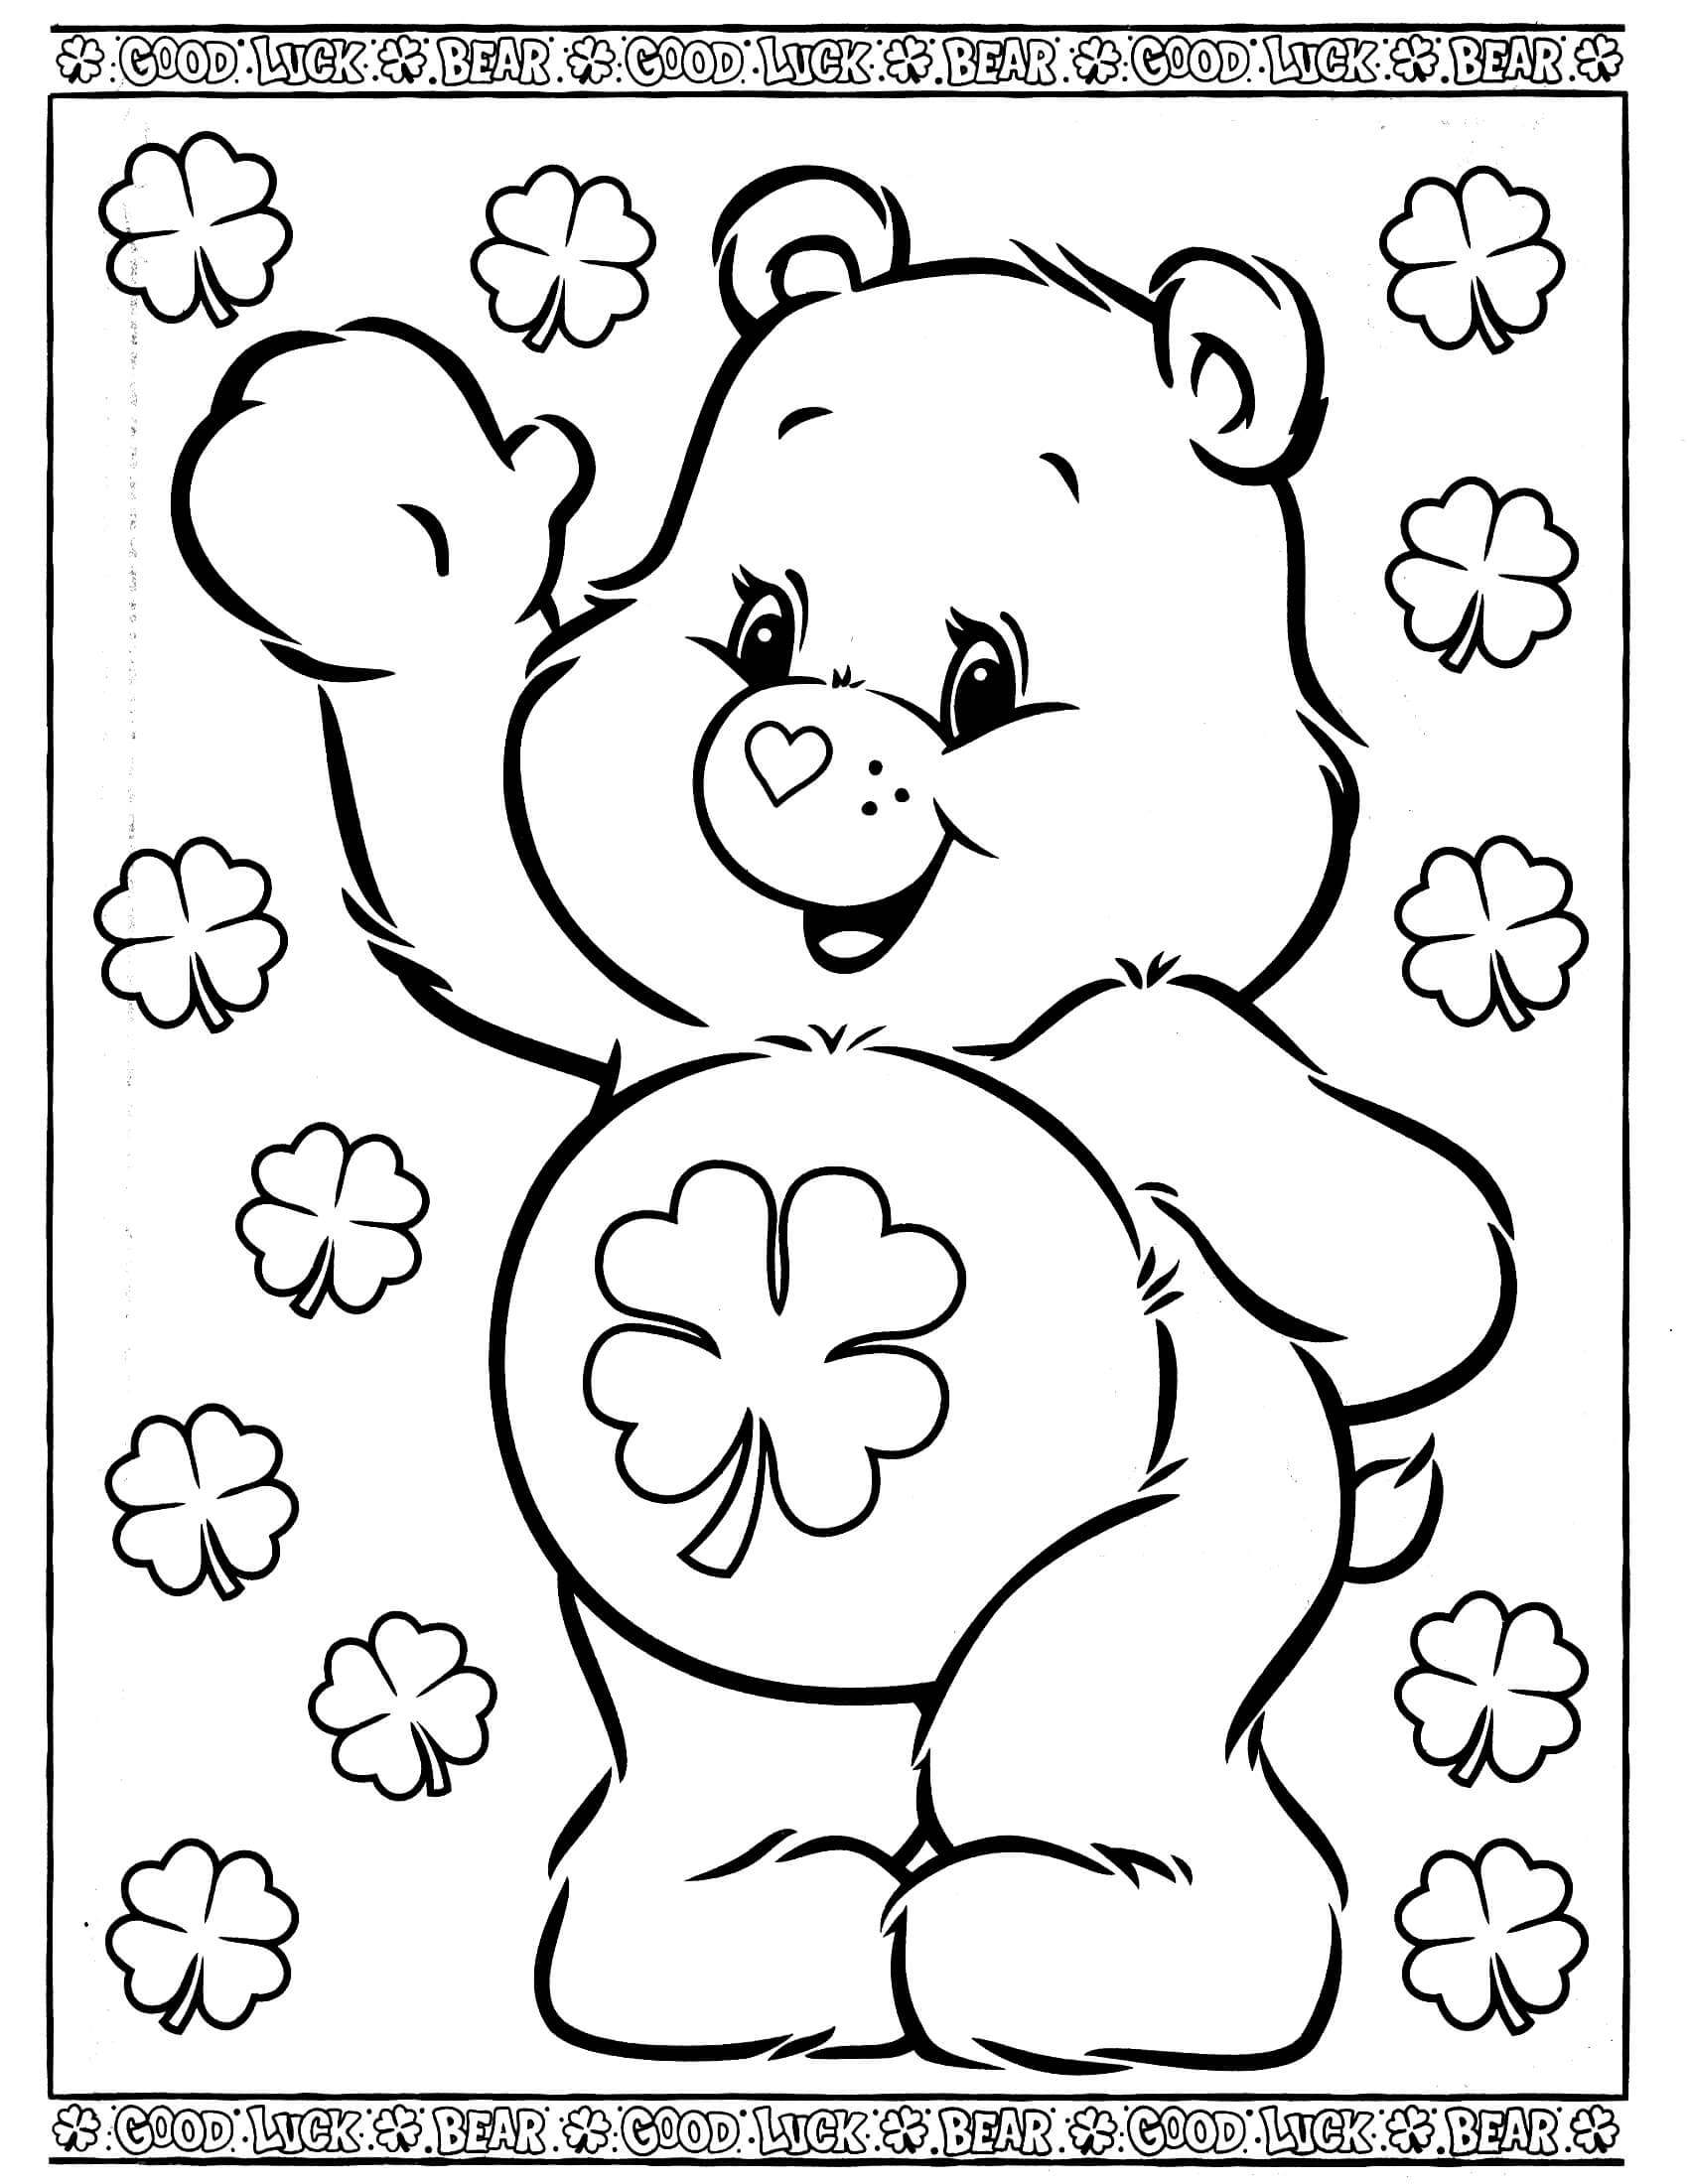 coloring pages of bears care bears 29 coloringcolorcom coloring bears of pages